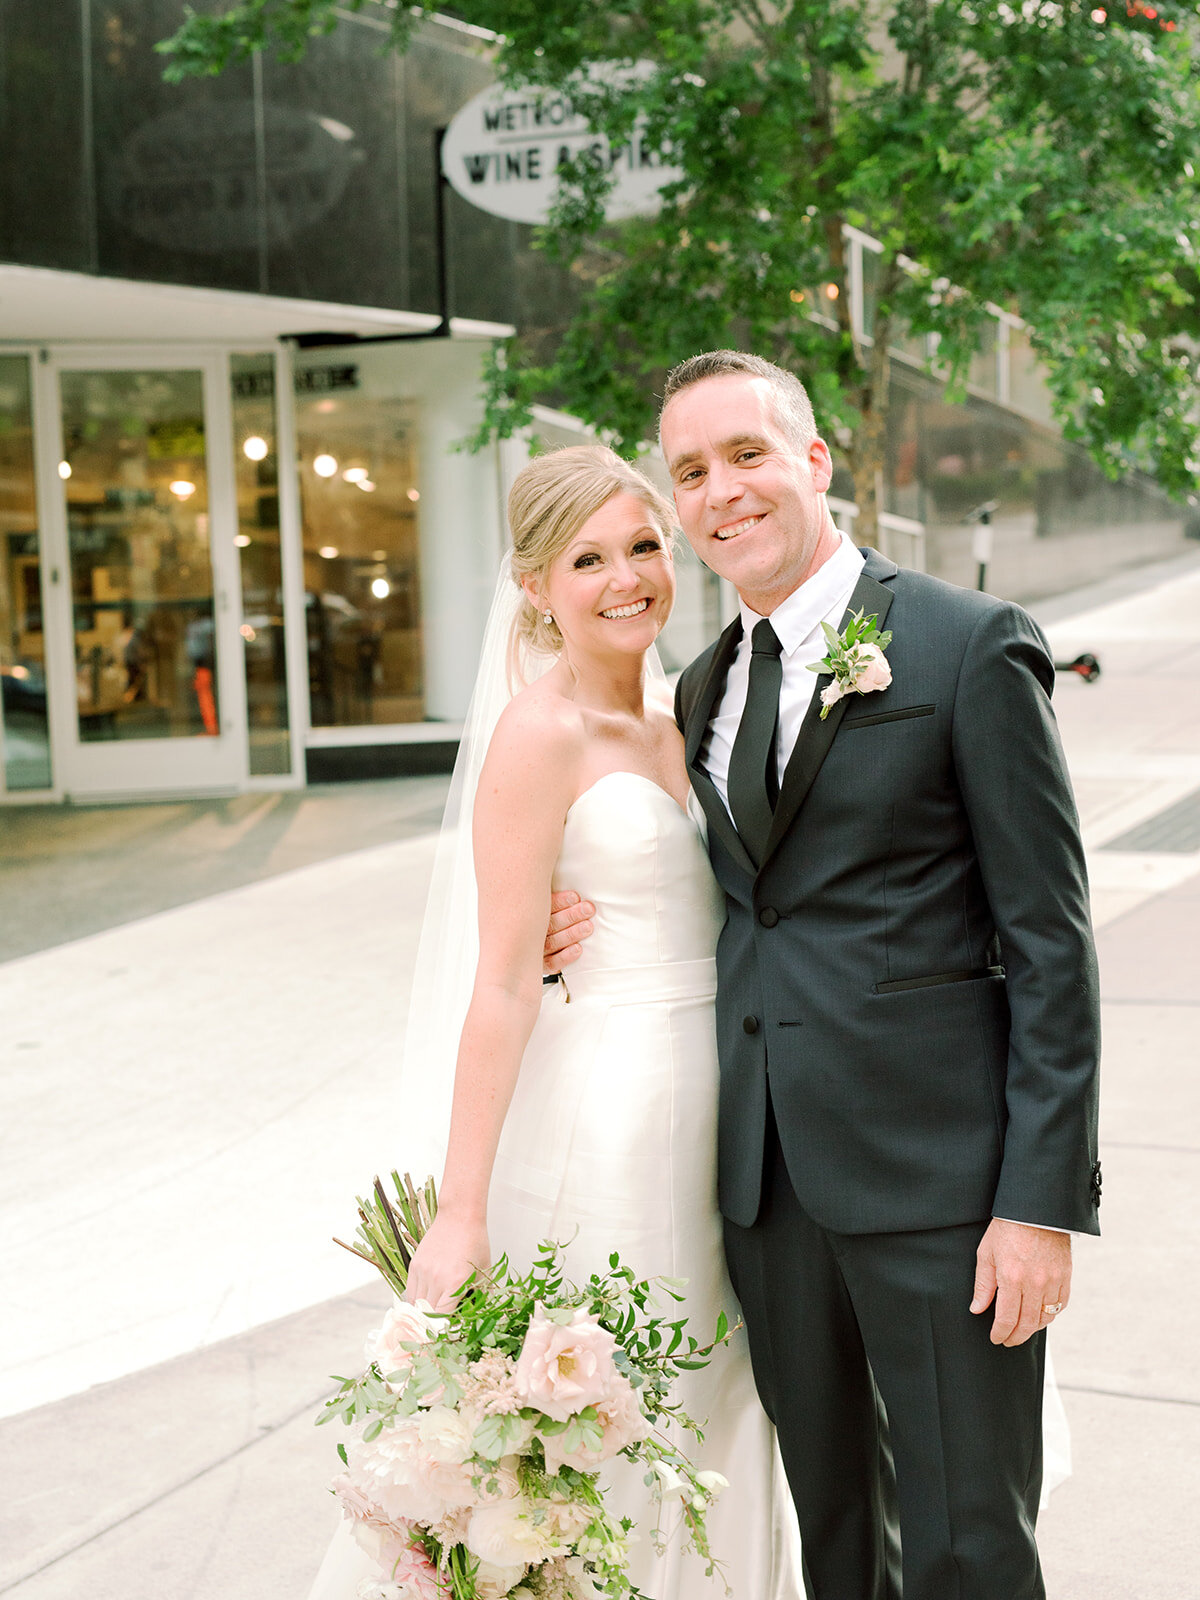 Downtown Nashville bride and groom portraits with blush and ivory color palette.